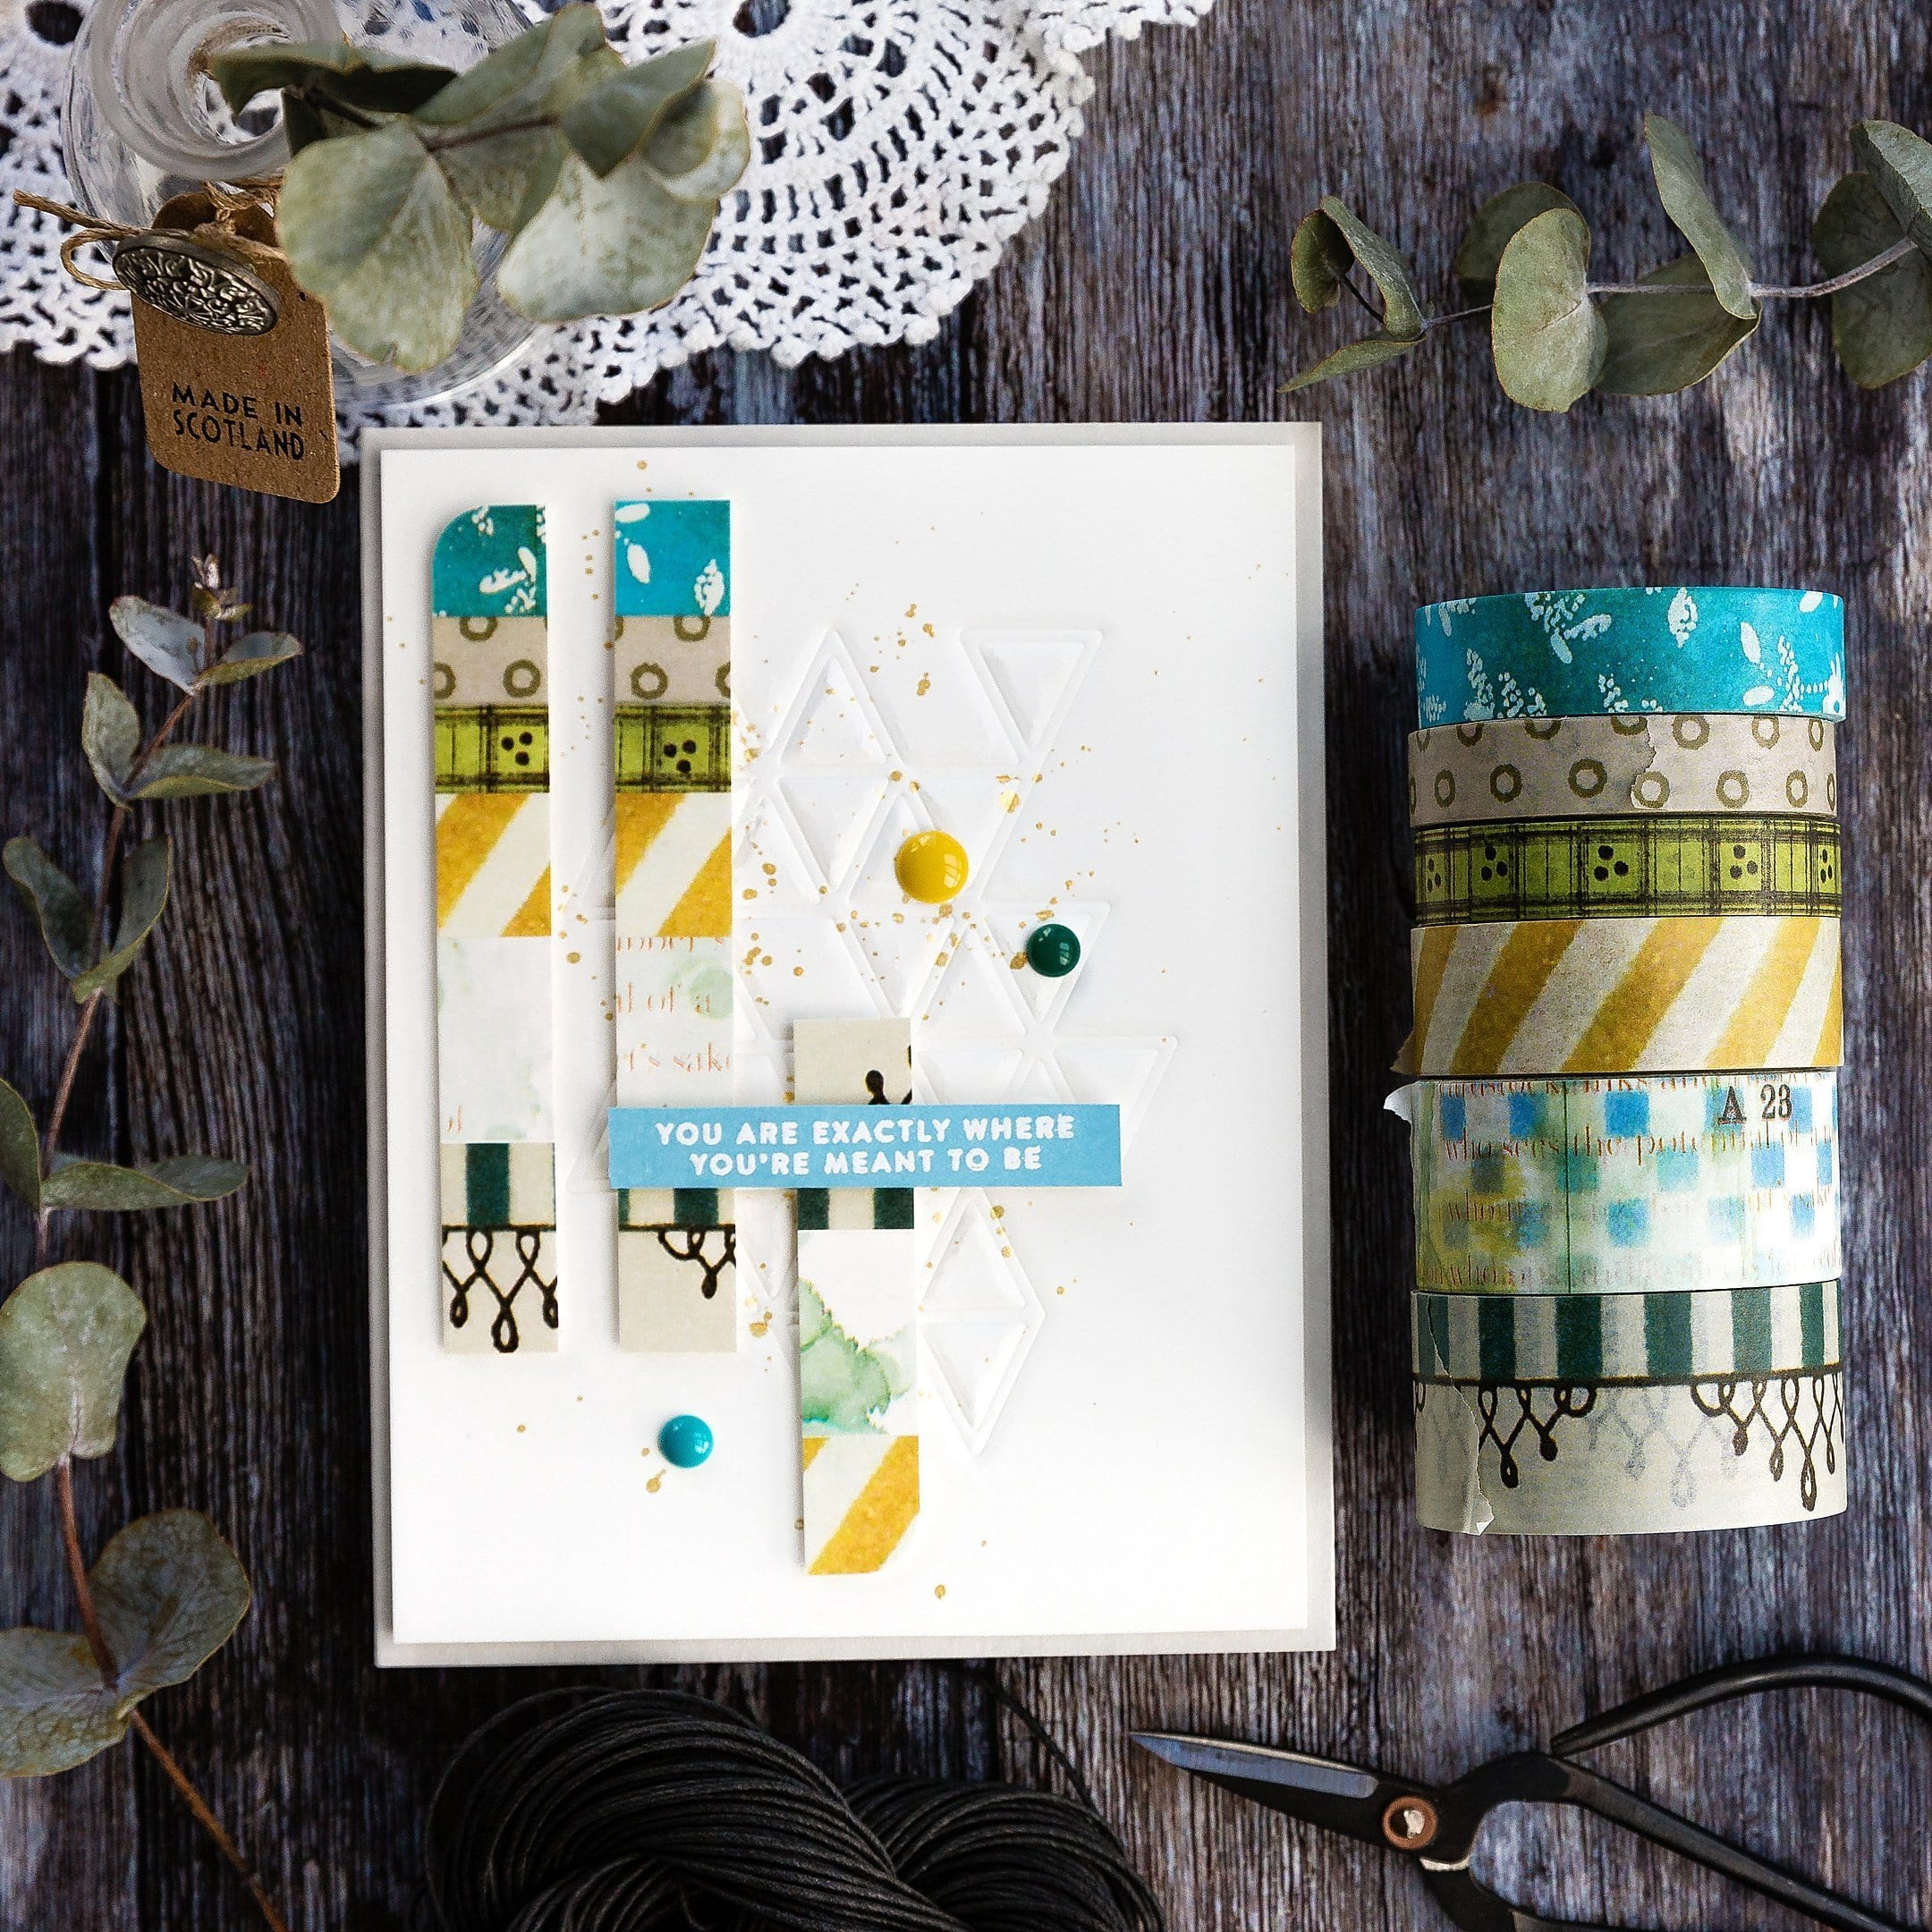 Simple washi tape handmade cards by Debby Hughes using supplies from Wendy Vecchi and Simon Says Stamp. Find out more here: https://limedoodledesign.com/2019/03/simple-washi-tape-cards/